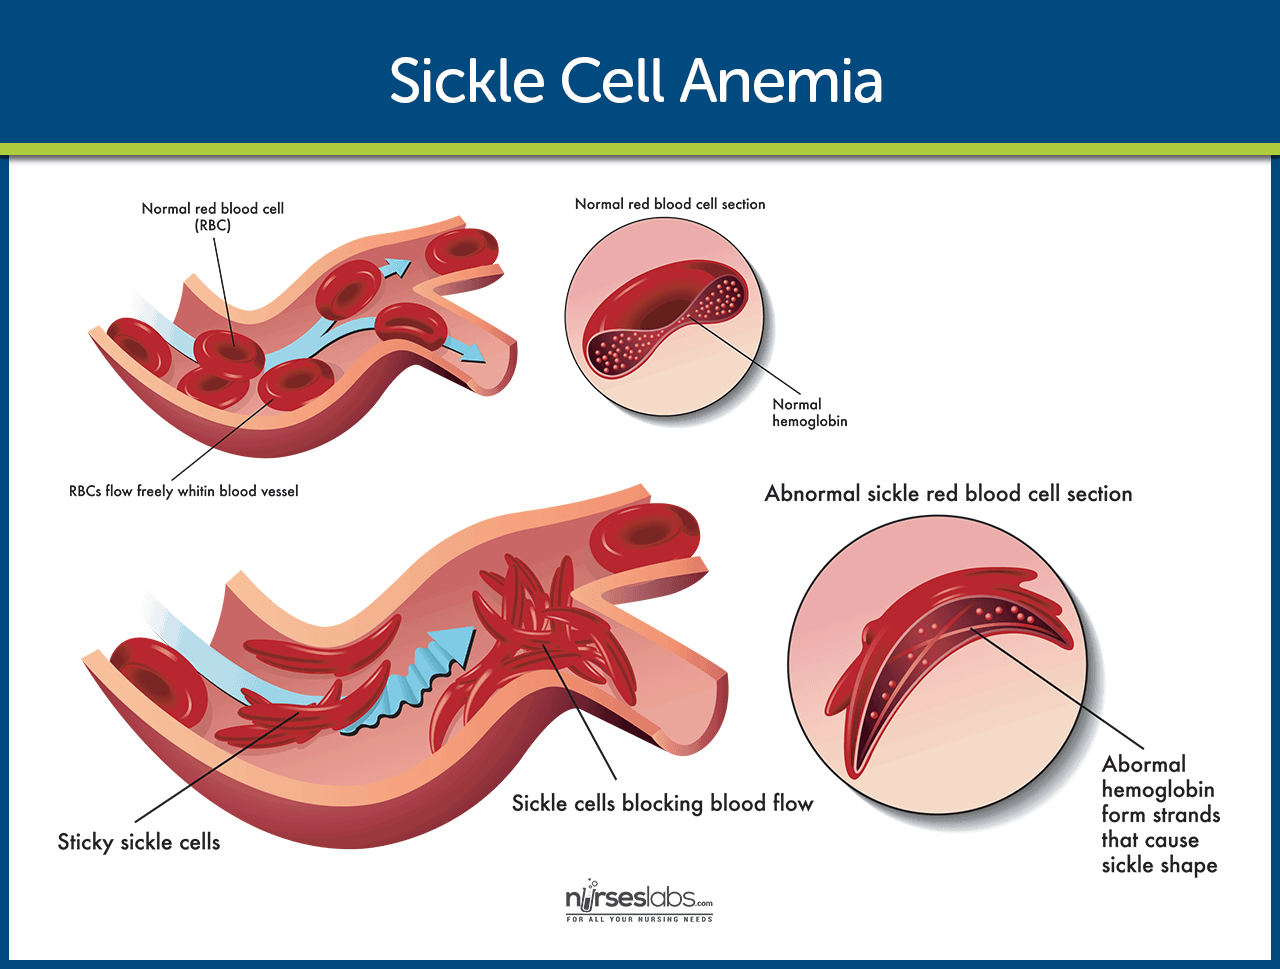 Data & Statistics on Sickle Cell Disease